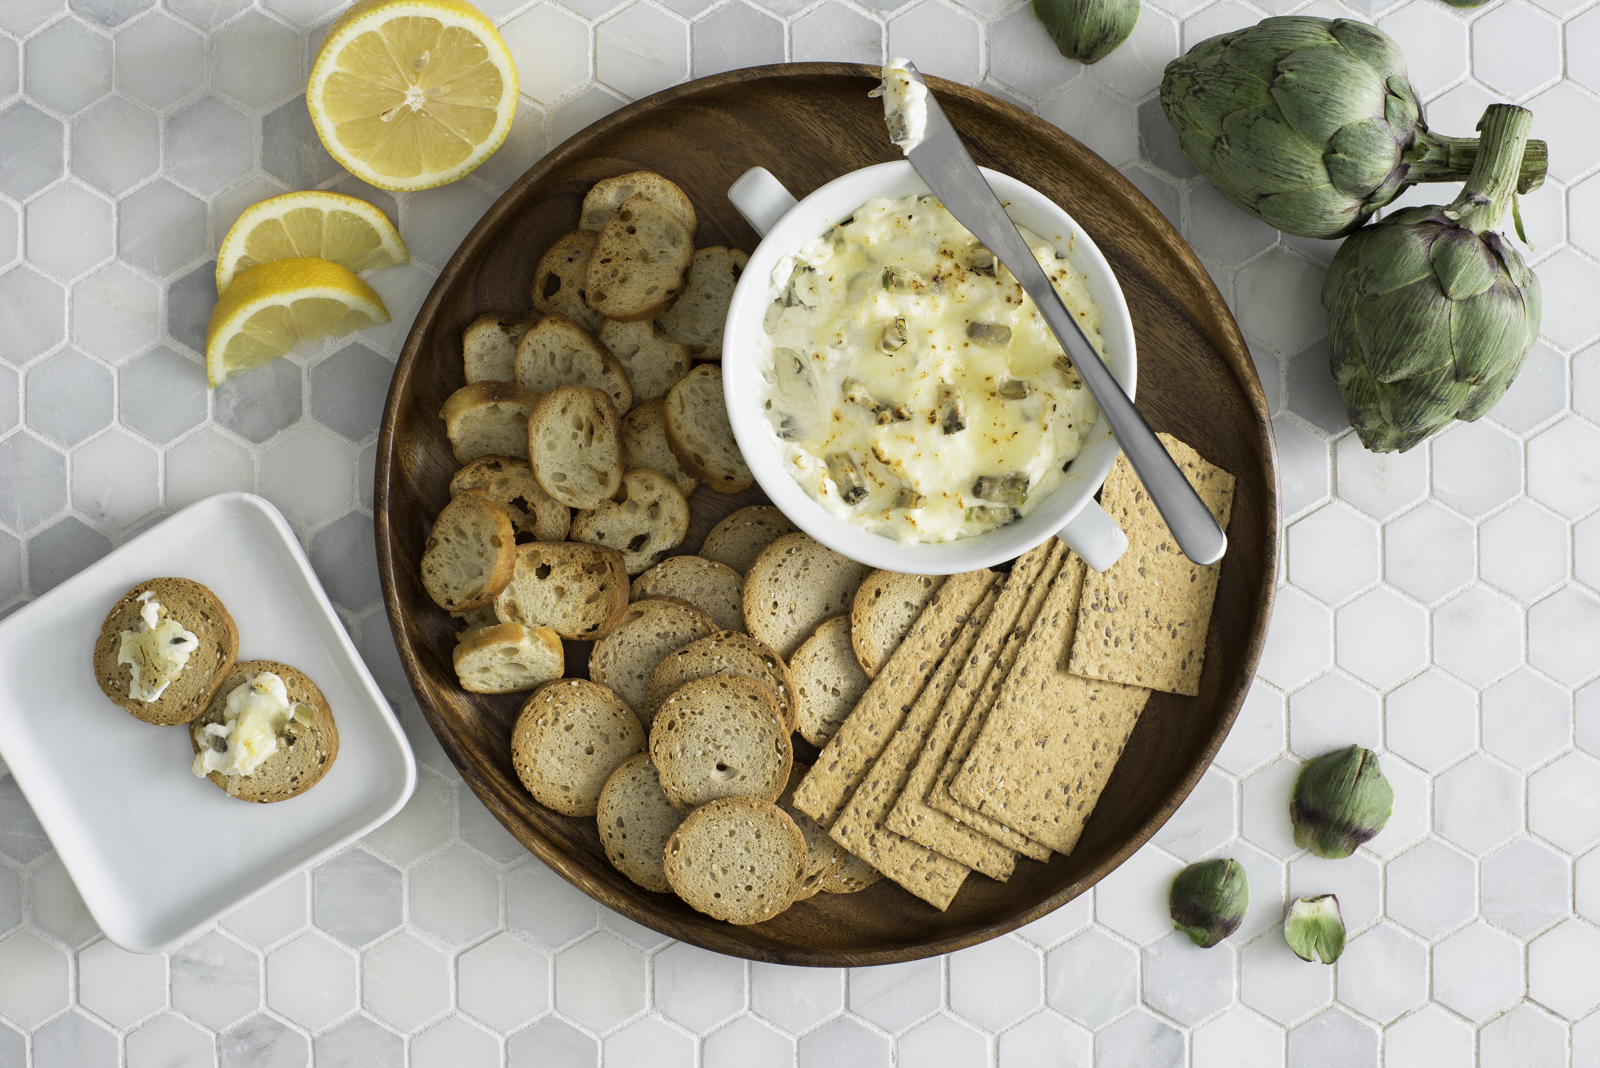 Roasted Artichoke and Asiago Dip